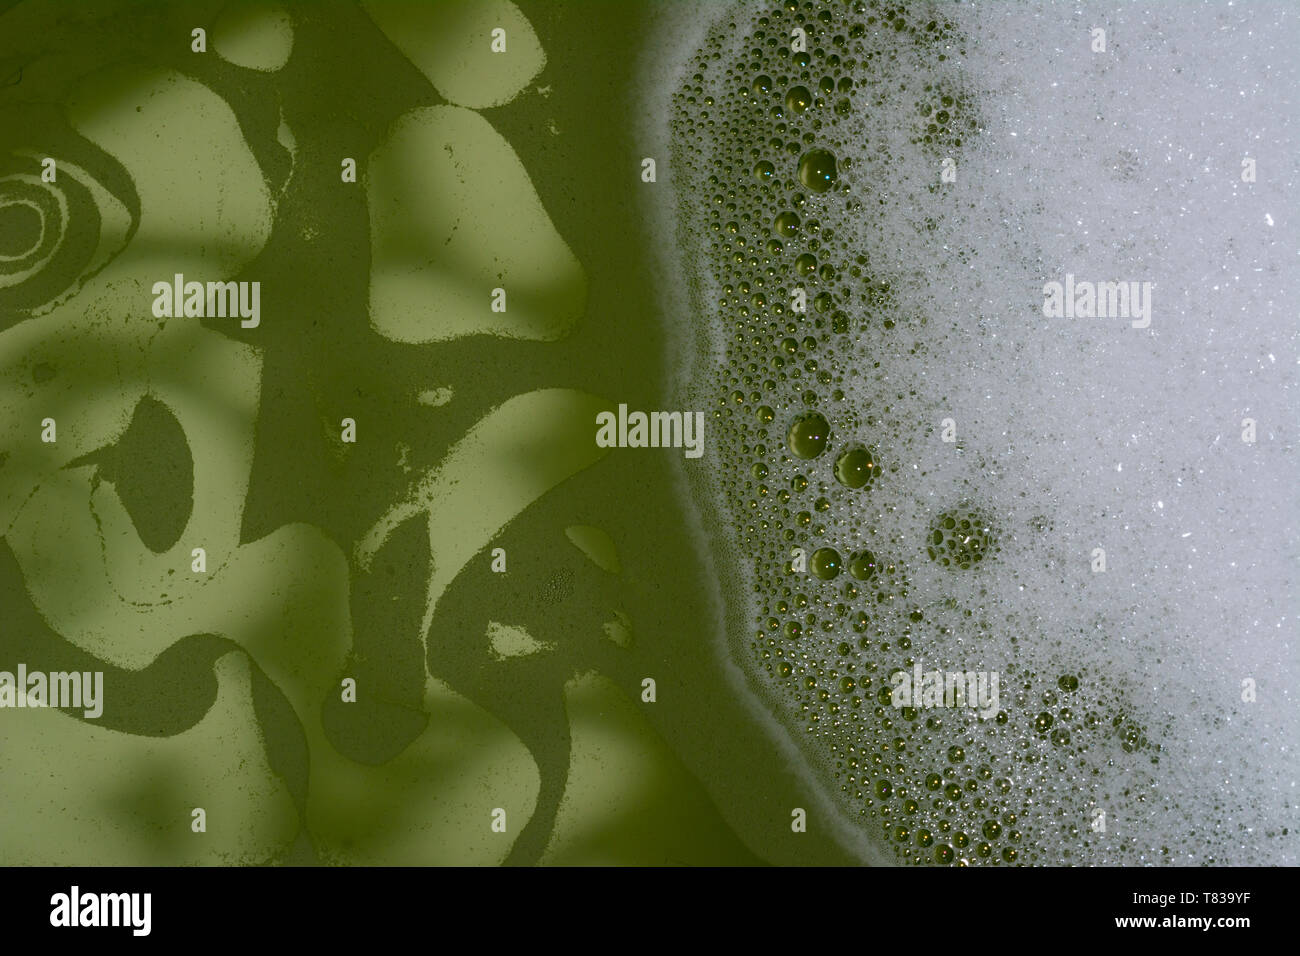 Liquid abstract background in motion background use - Stock Image